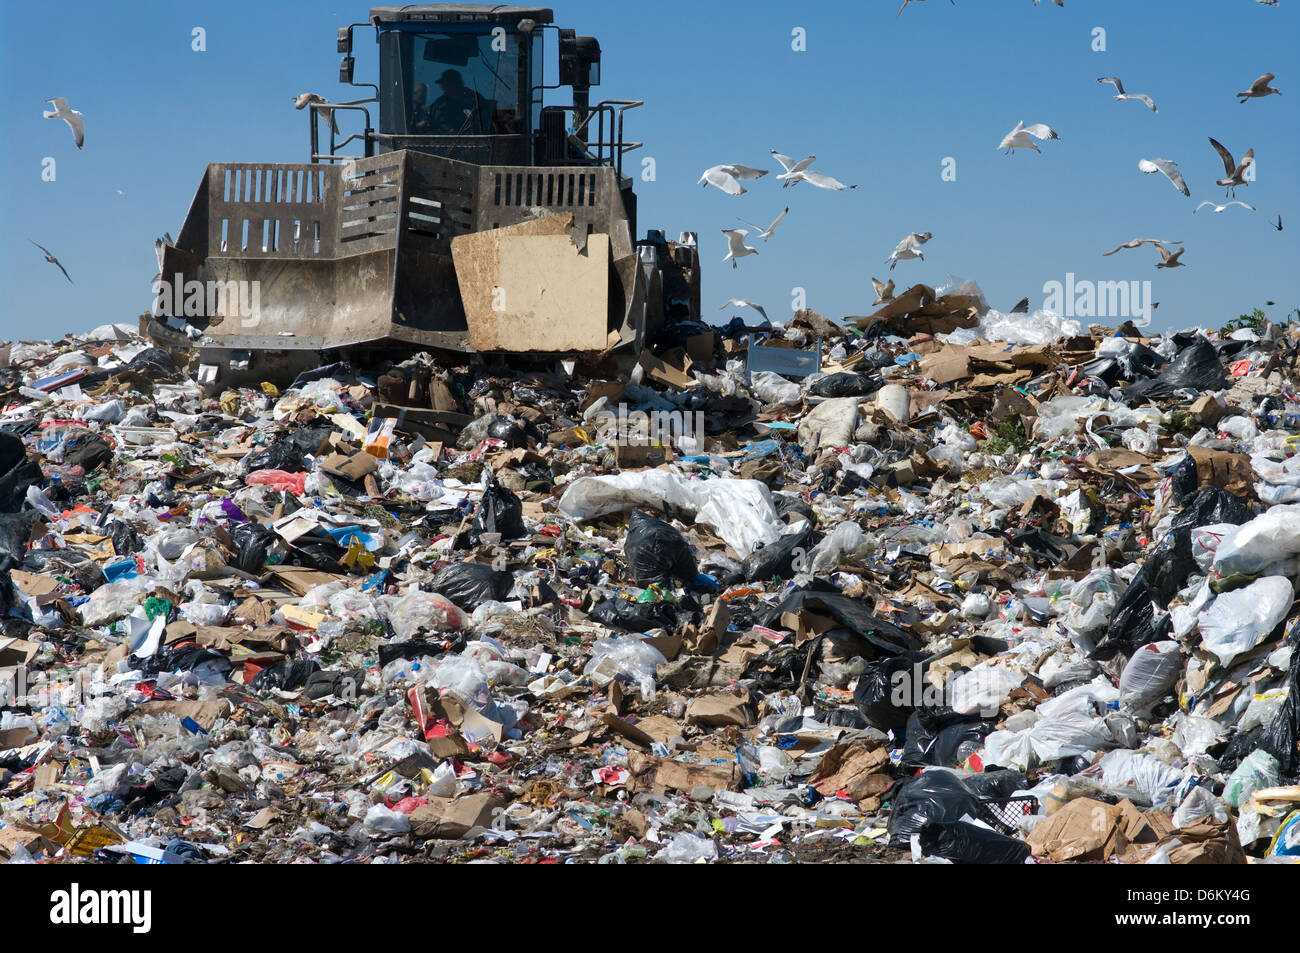 Truck moving trash in a landfill - Stock Image